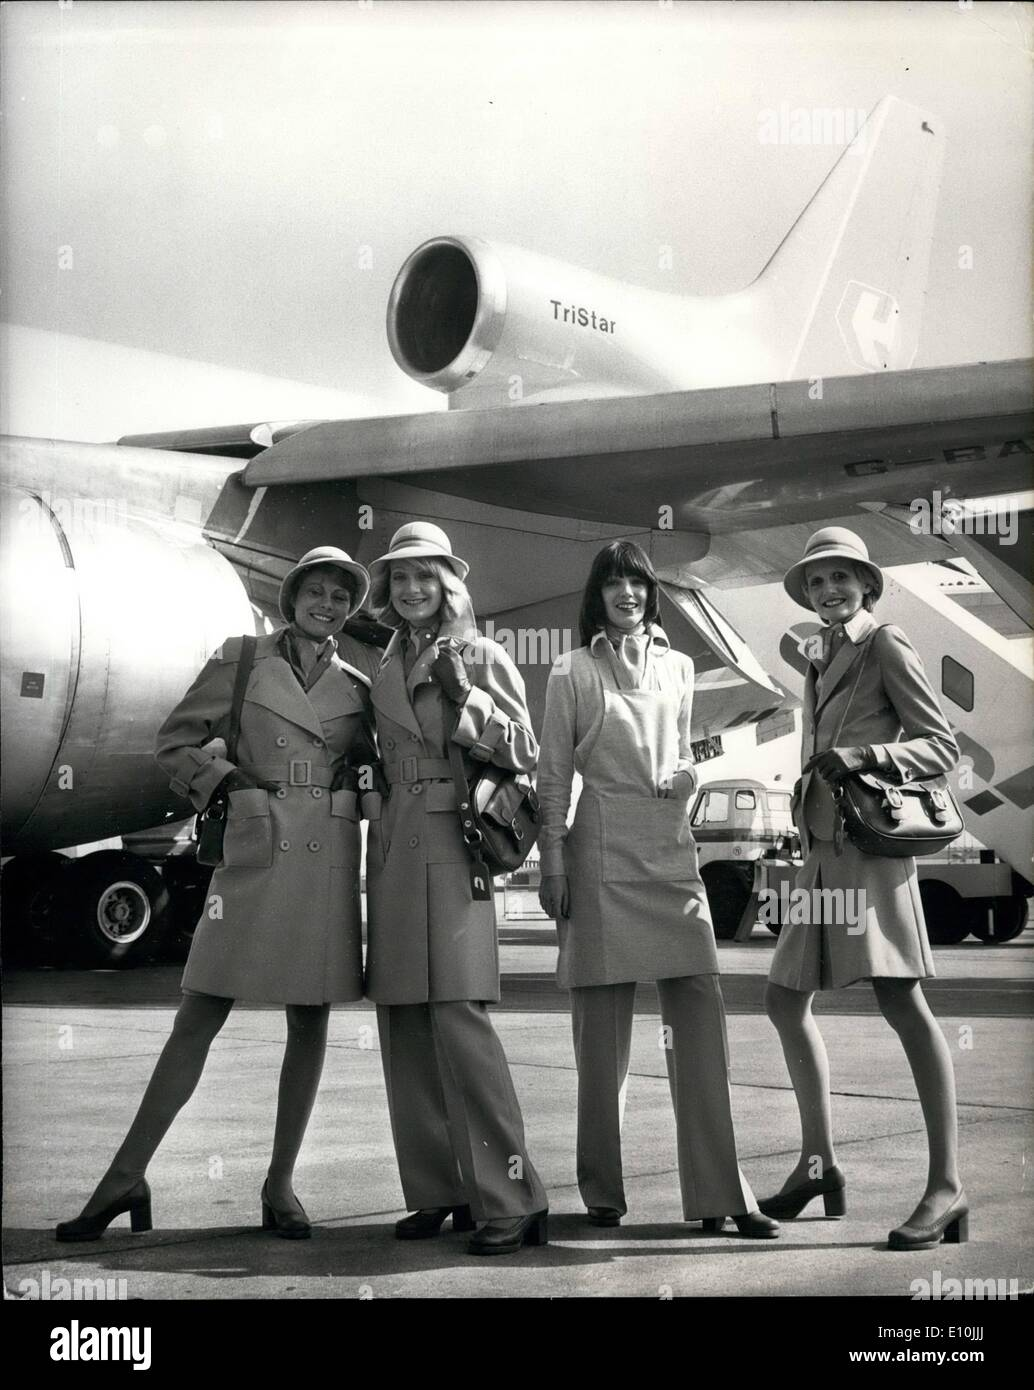 Mar. 03, 1973 - Court Line Introduces new uniforms designed by Mary Quant: New stewardesses uniforms for Court Line - Stock Image